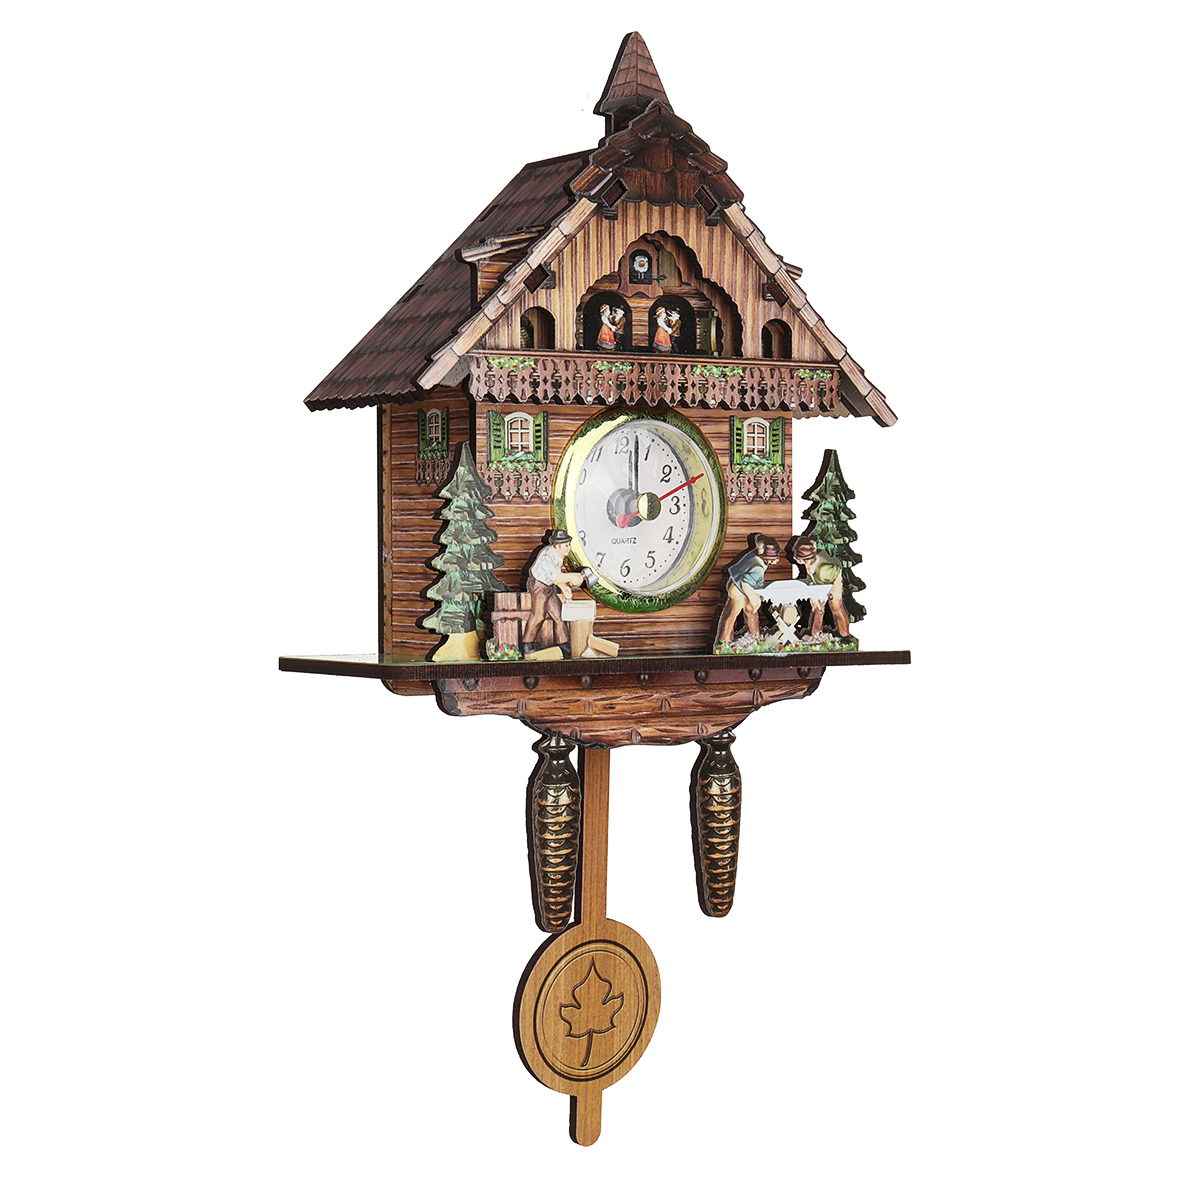 3 Style Cuckoo Clock Wall Clock Living Room Bird Alarm Clock Watch Hanging Wooden Bell Pointer Home Decor